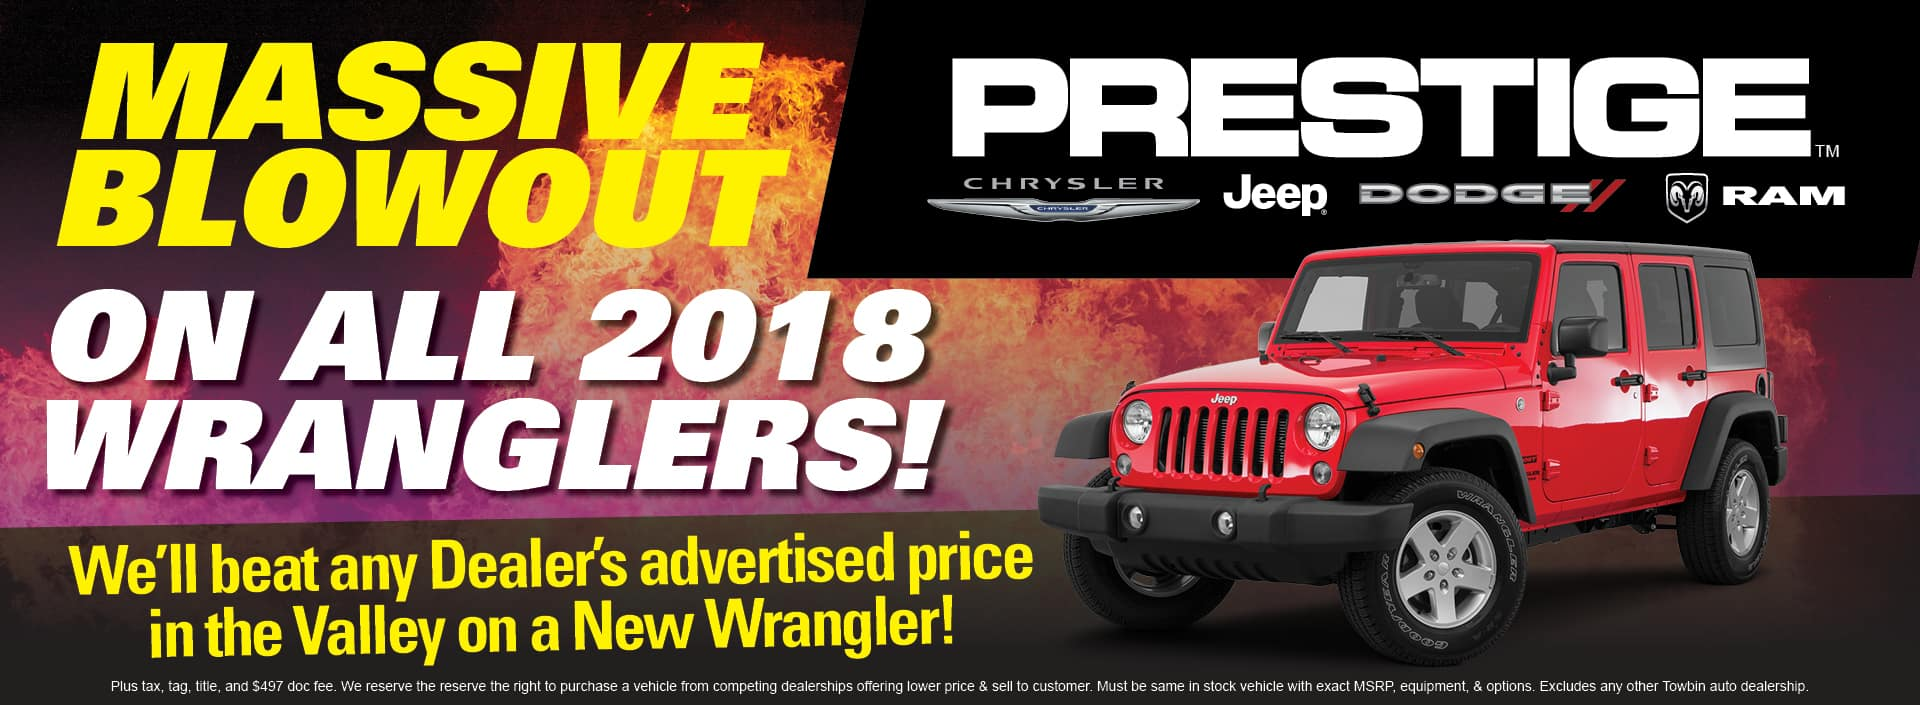 Jeep Wrangler Msrp >> New Jeep Wrangler In Las Vegas Prestige Chrysler Jeep